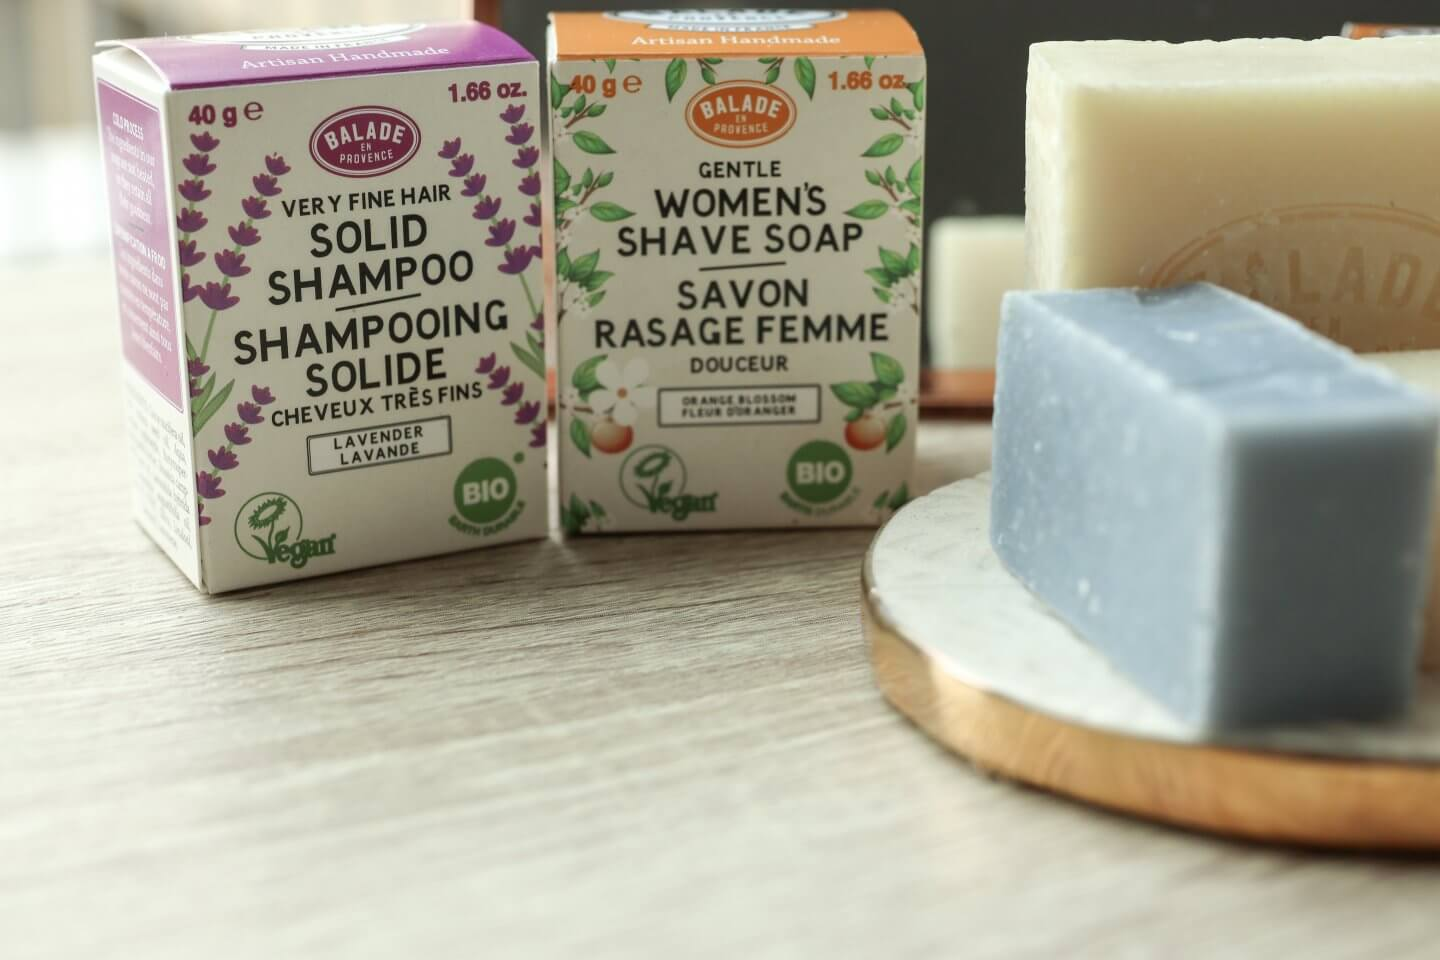 New Vegan Organic Solid Shampoo and Shaving Bar from Balade en Provance